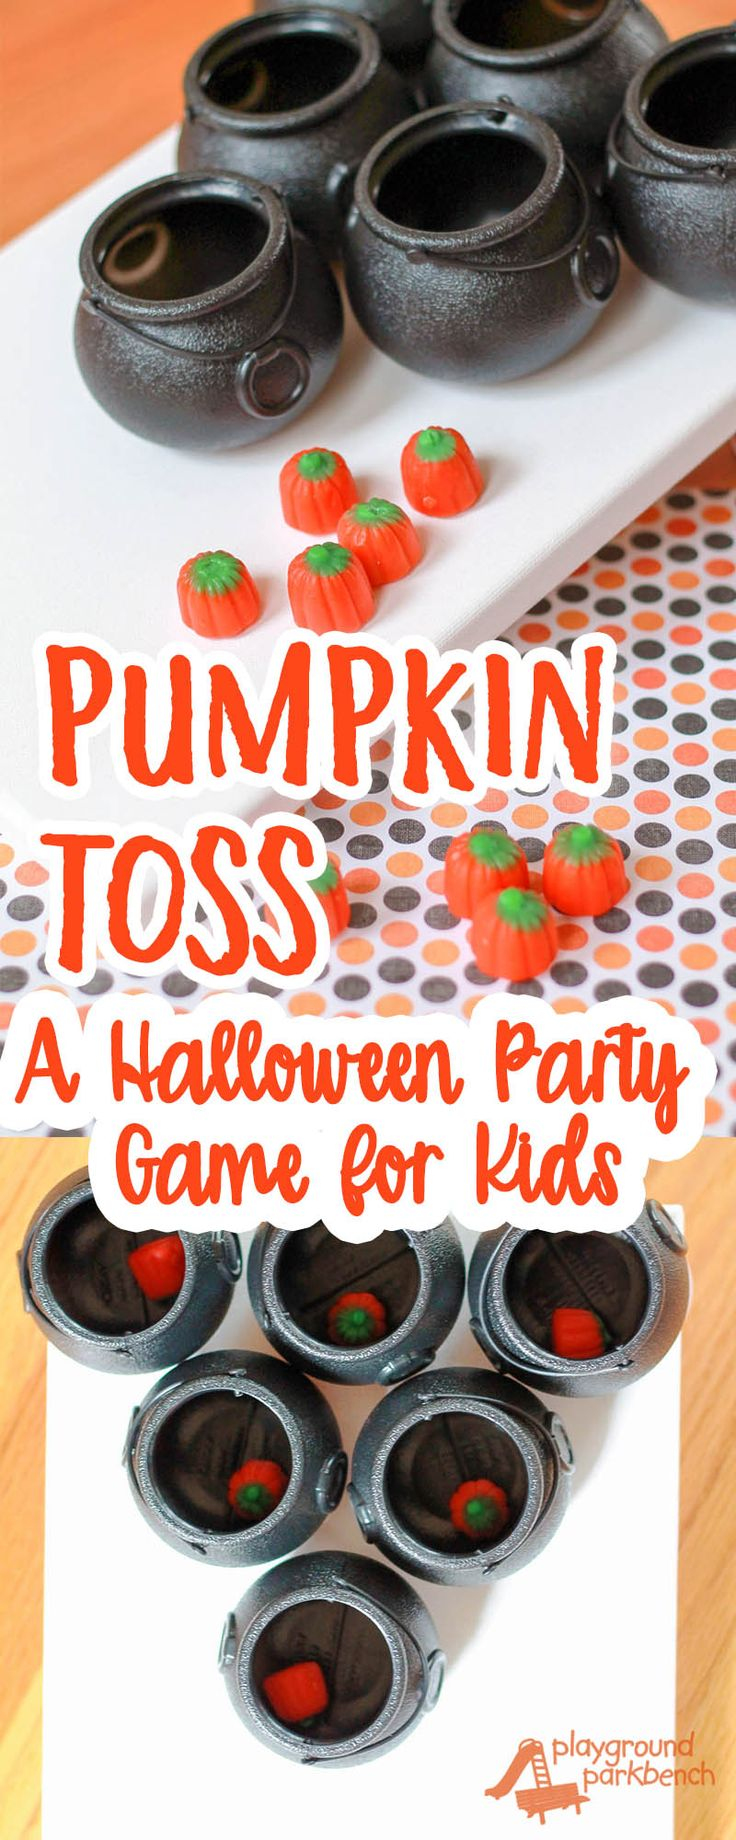 25+ best Halloween party games ideas on Pinterest | Class ...